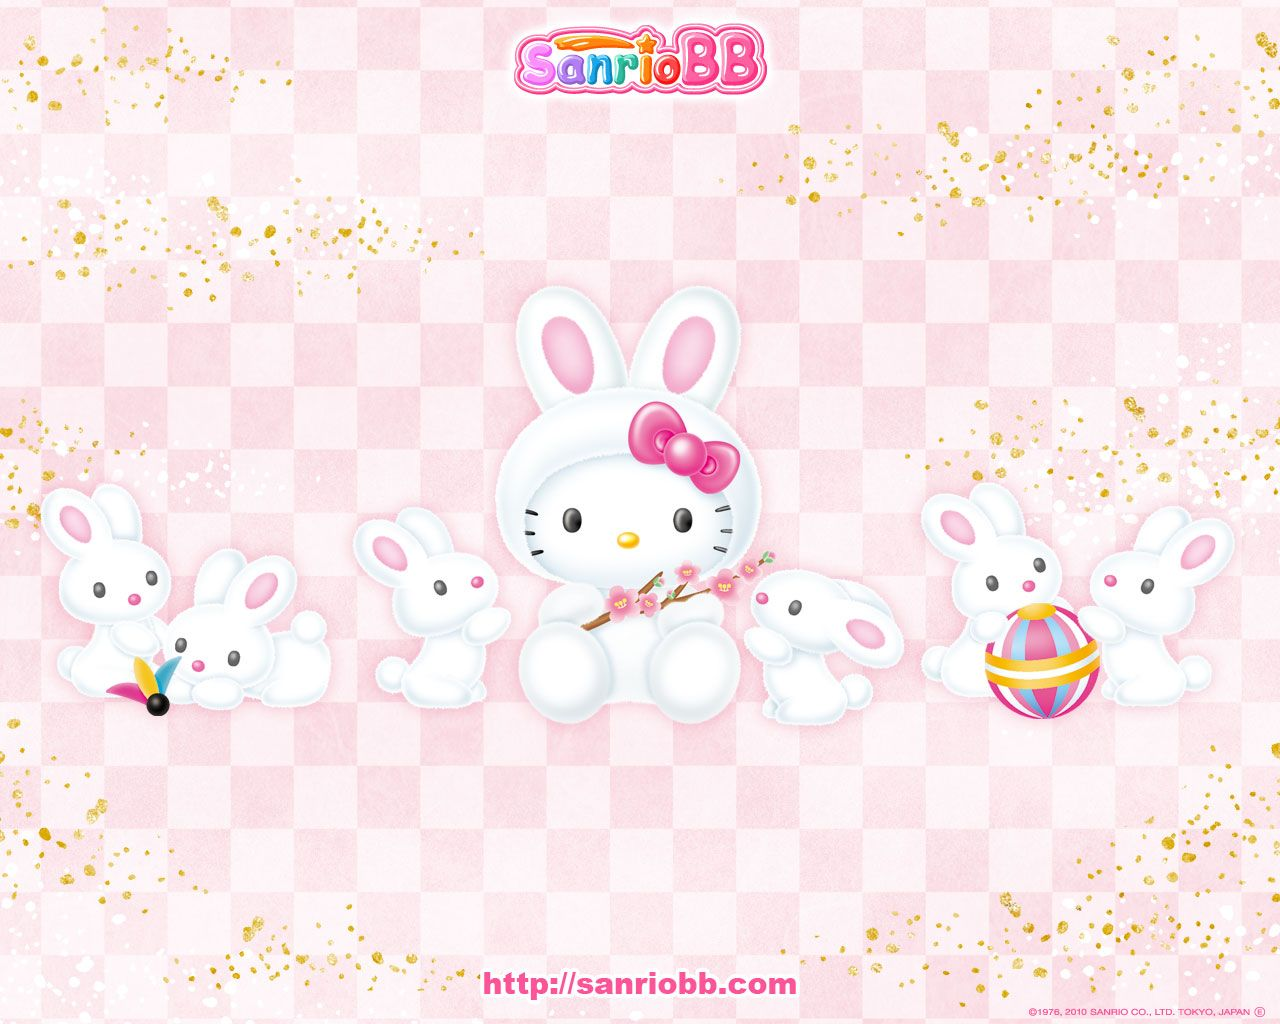 1280x1024 Free download kawaii wallpapers for Easter modeS Blog ...